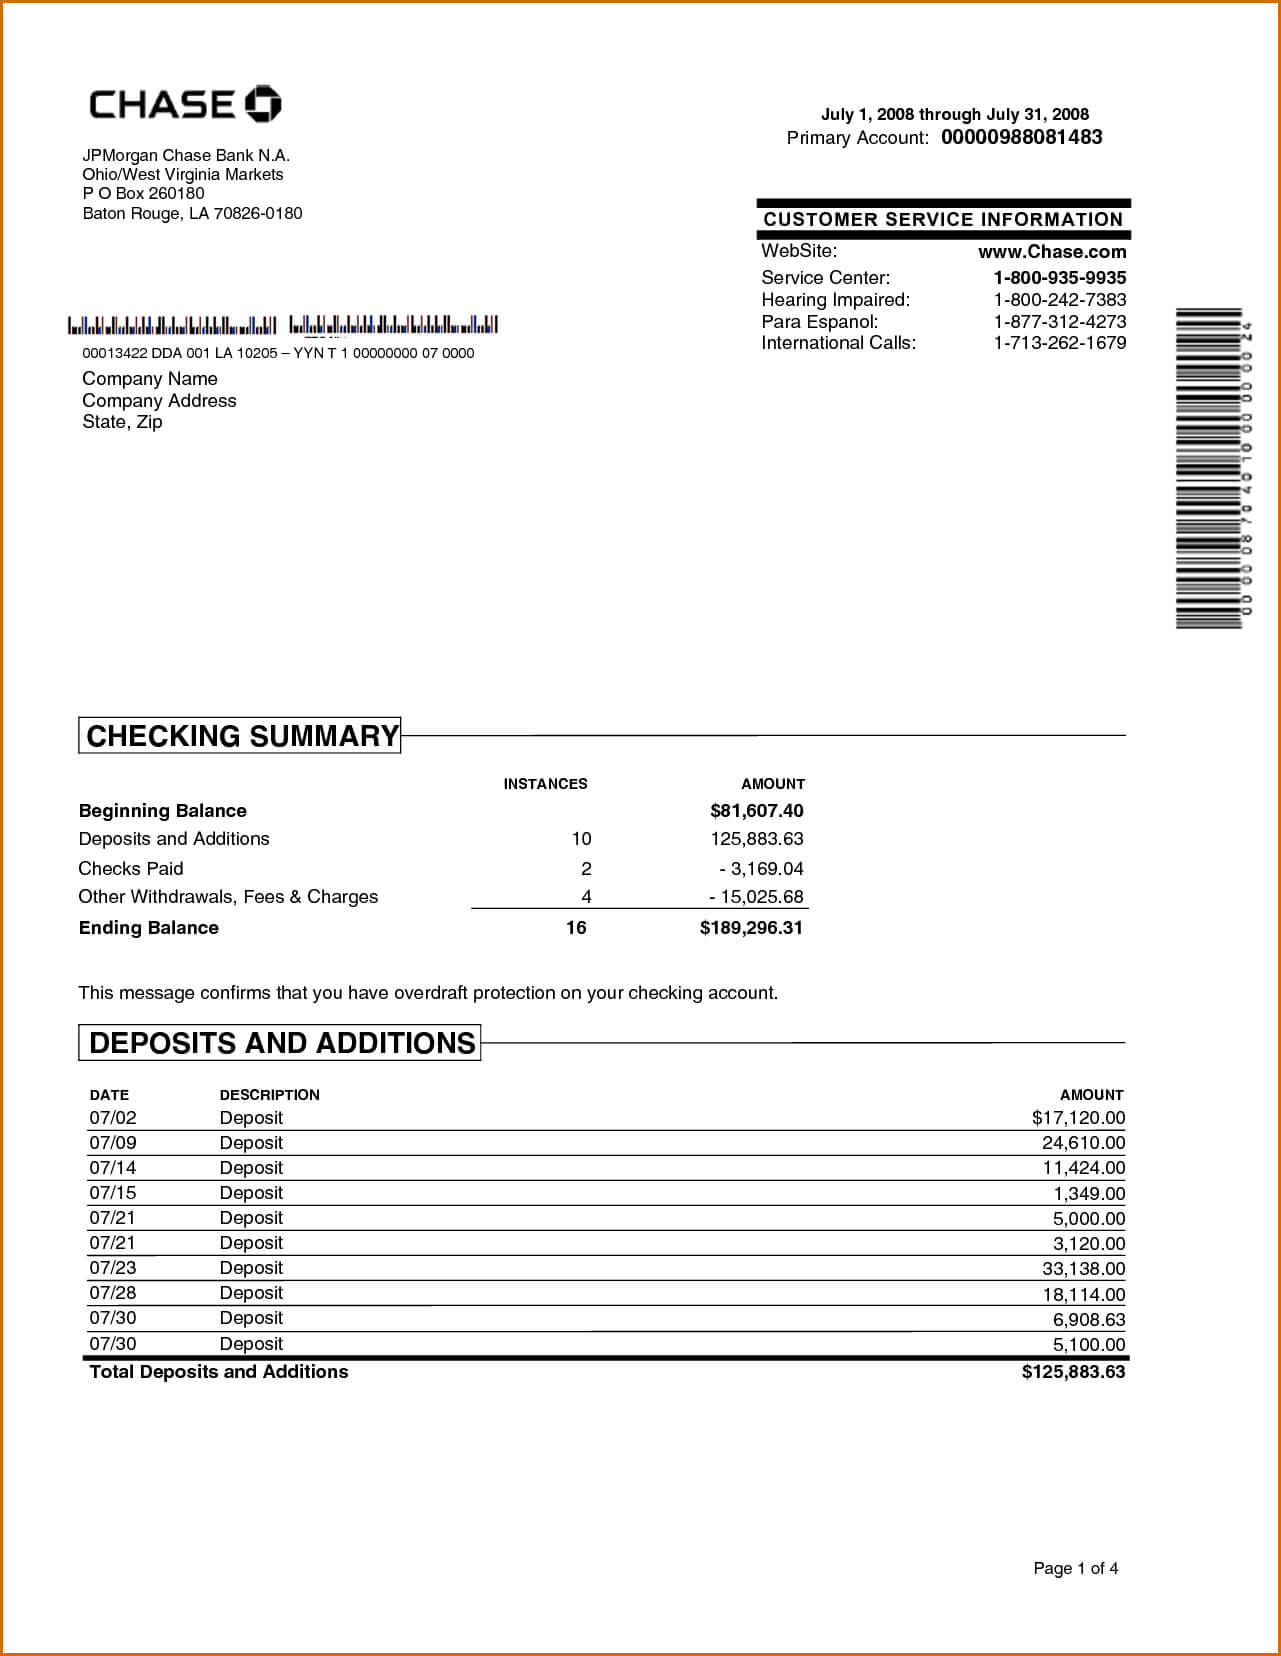 Chase Bank Statement Online Template | Best Template For Credit Card Statement Template